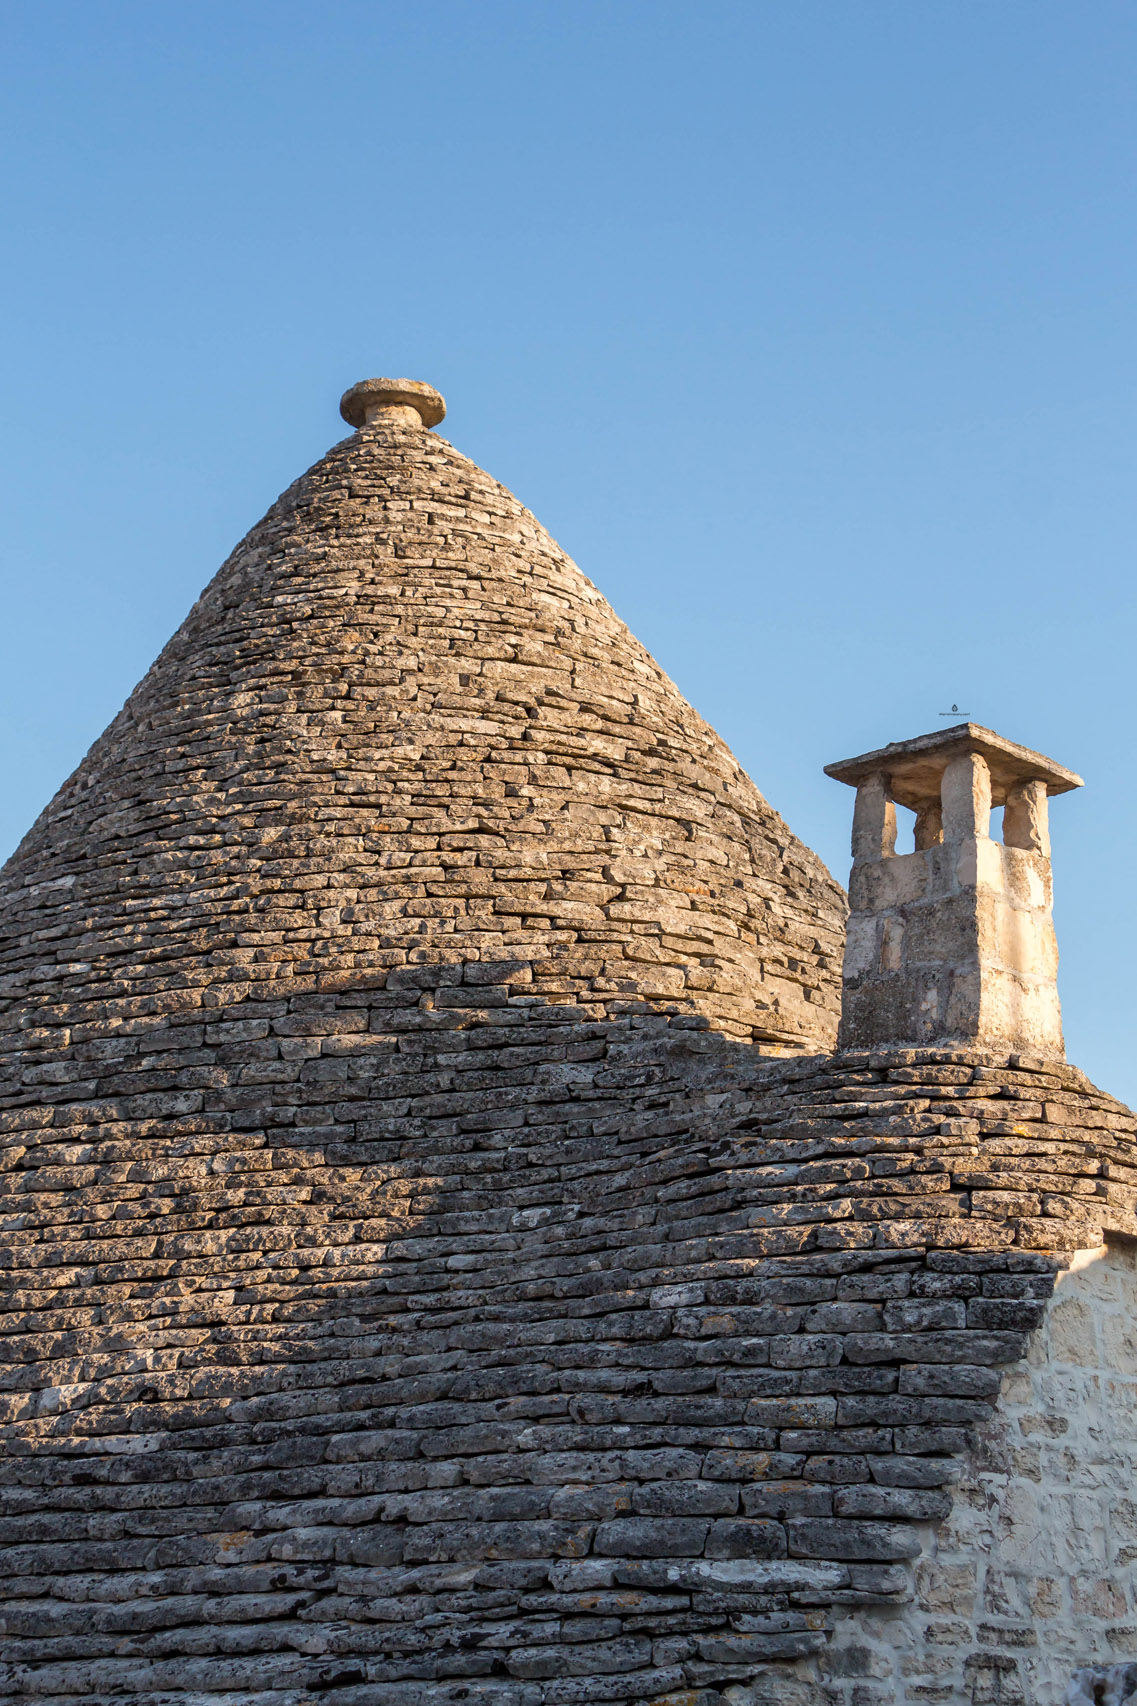 Trullo in Alberobello, Italy